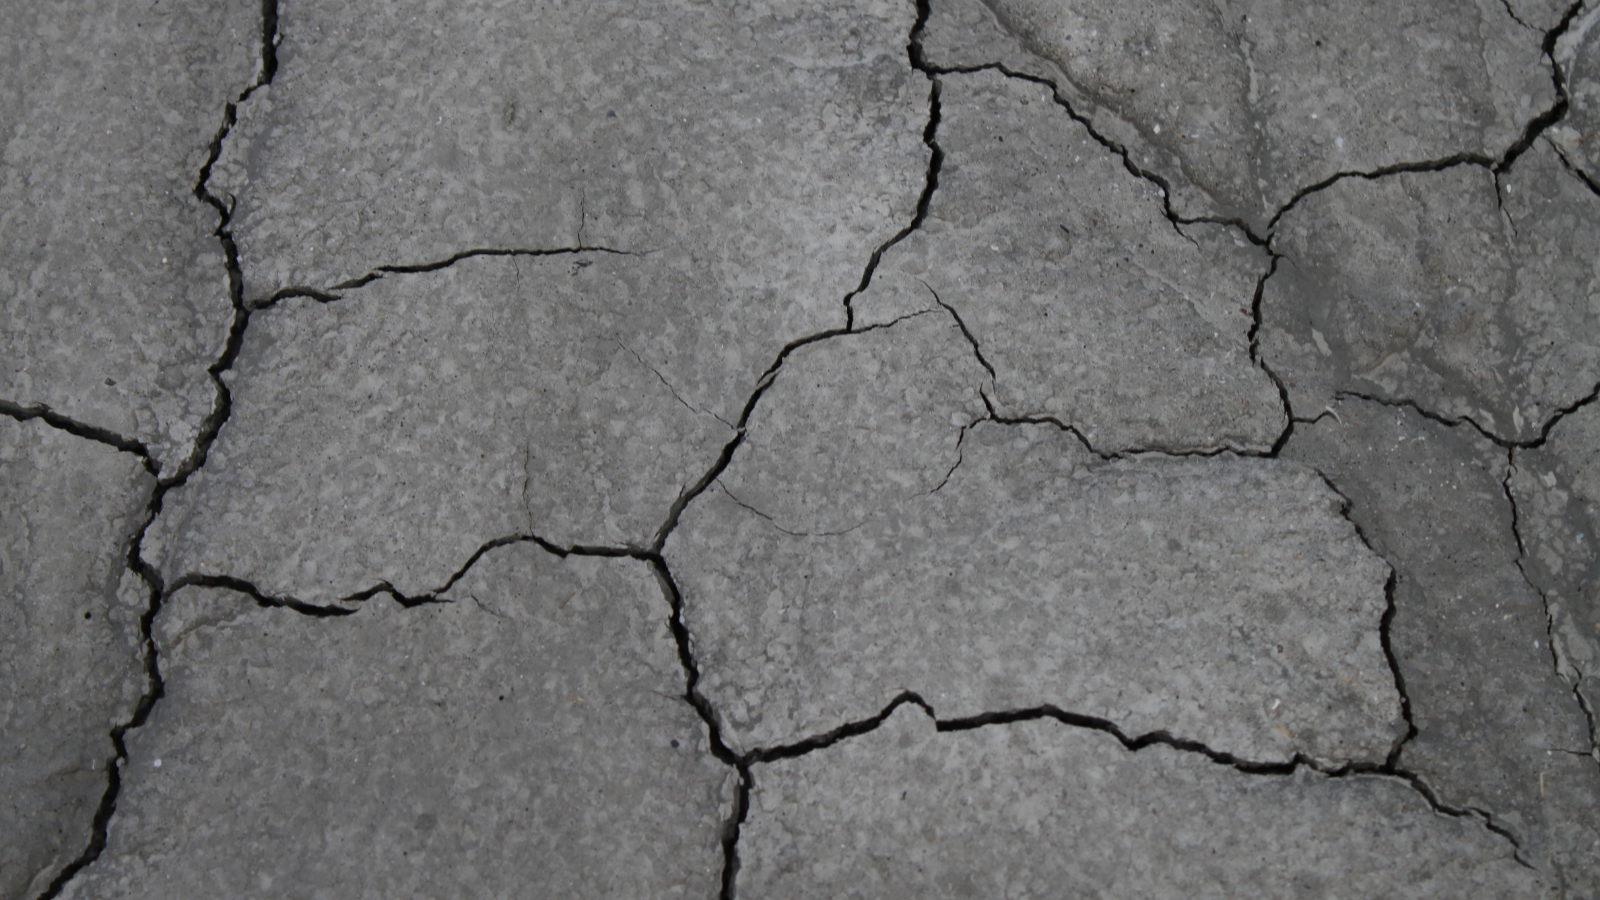 Cracking is the result of alcohol drying out the surface. Using an alcohol-based wipe or spray strips away moisture and protective coating and layers.